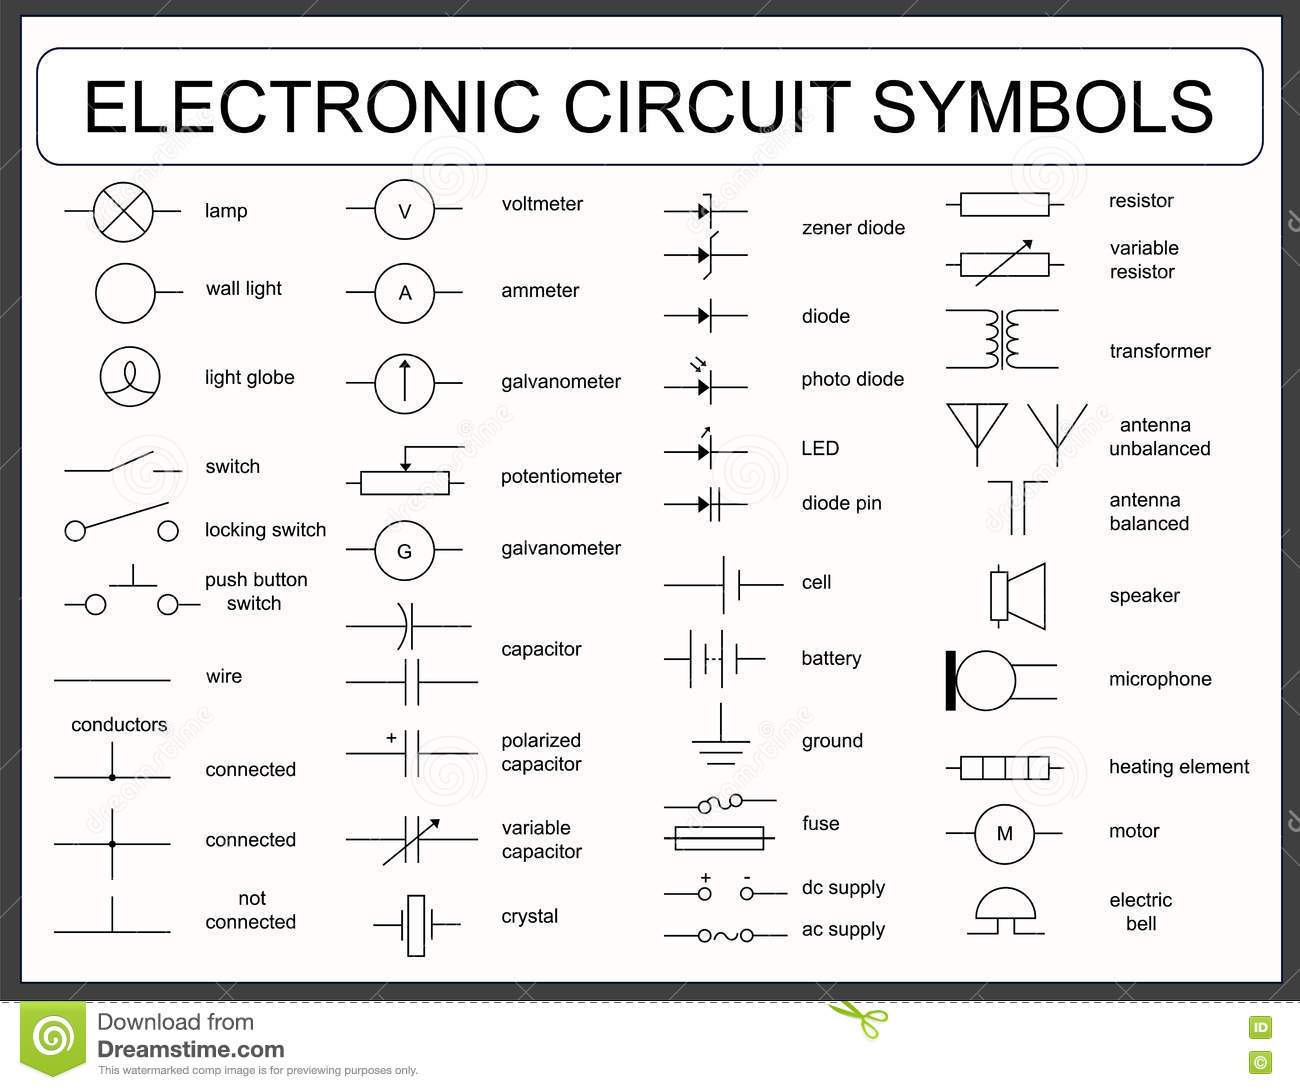 hight resolution of electric wiring diagrams symbols wiring diagram article house wiring electrical symbols wiring diagram symbols chart wiring